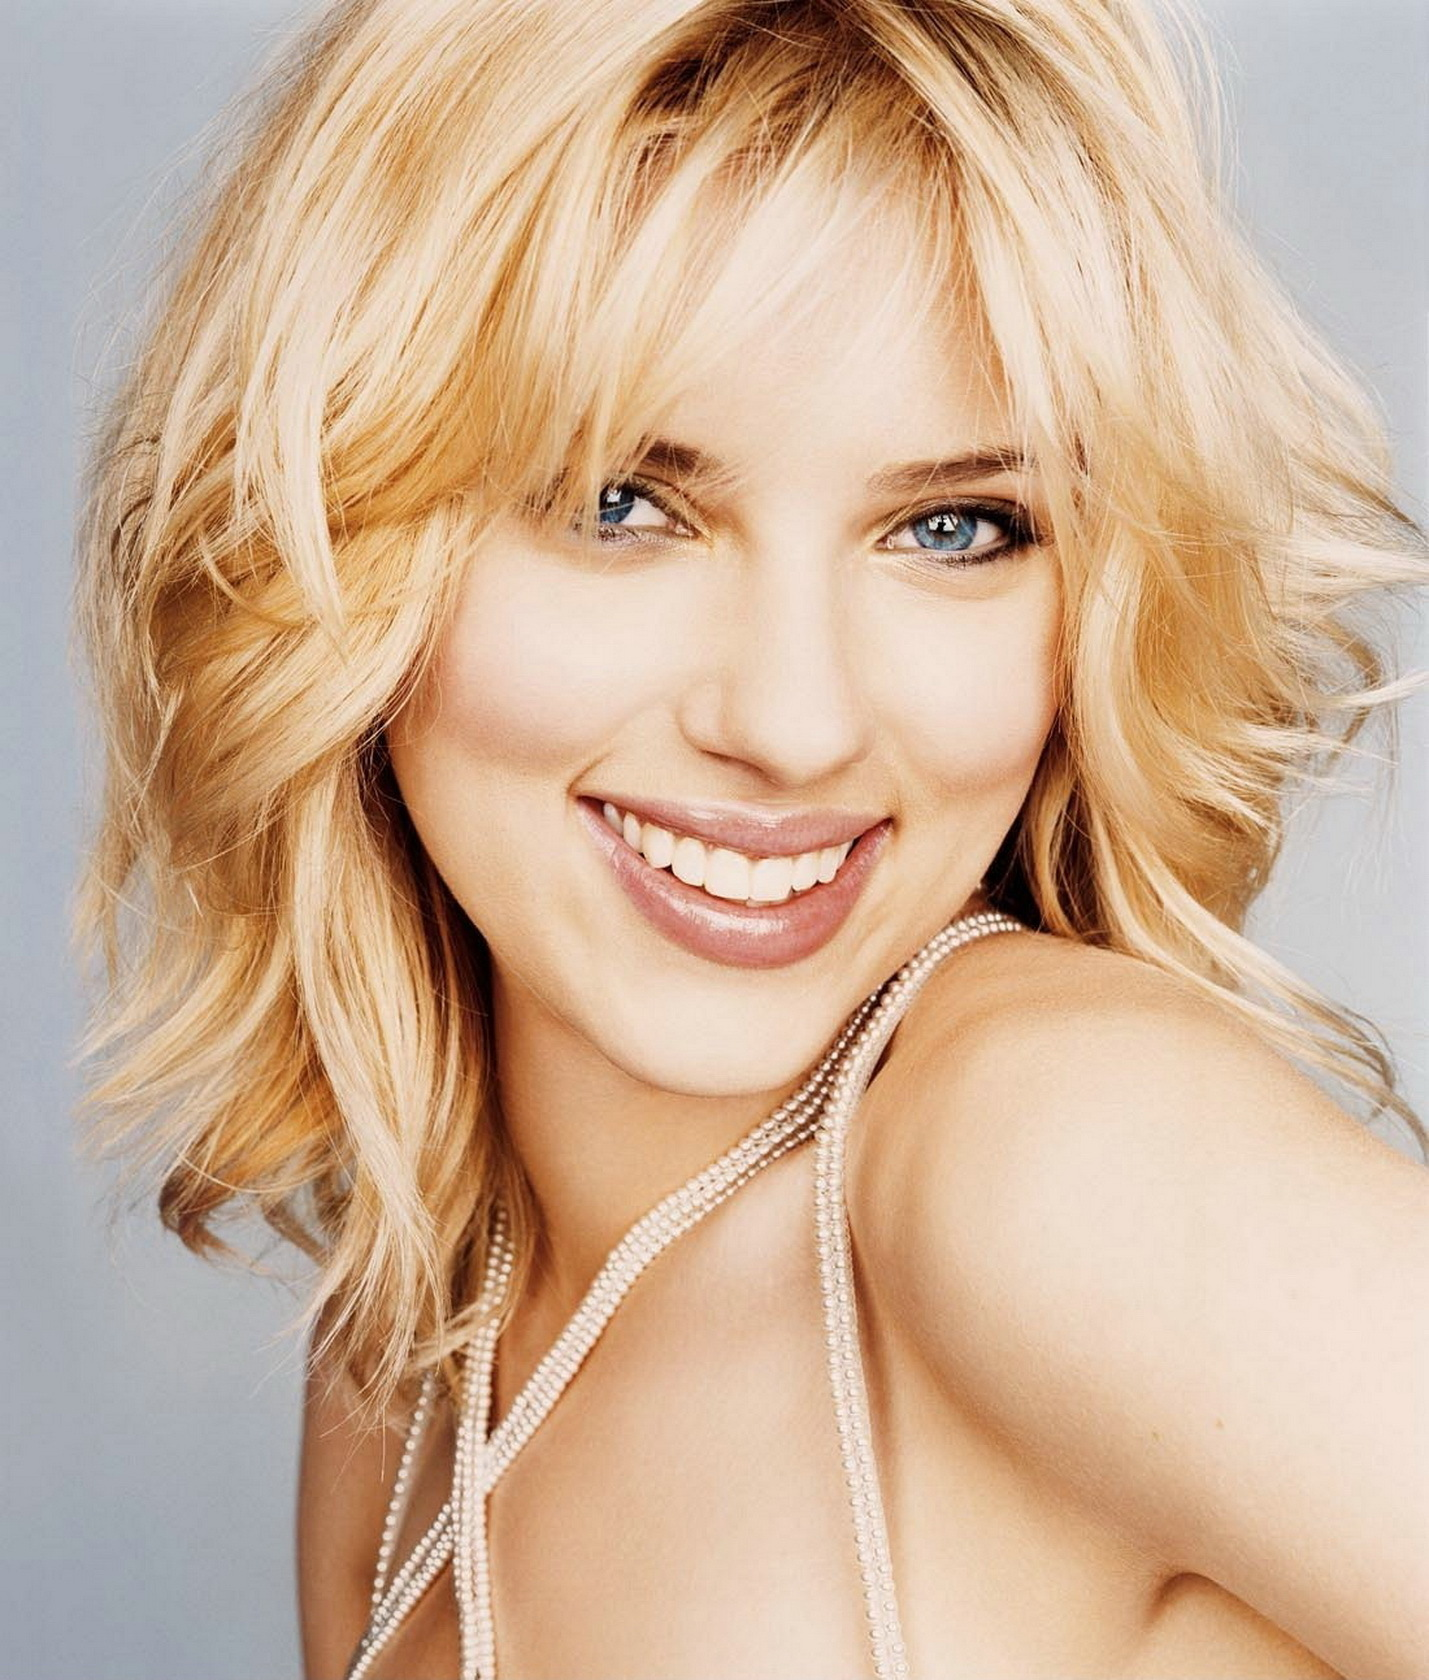 Scarlett Johansson | Unknown Photoshoot (HQ)